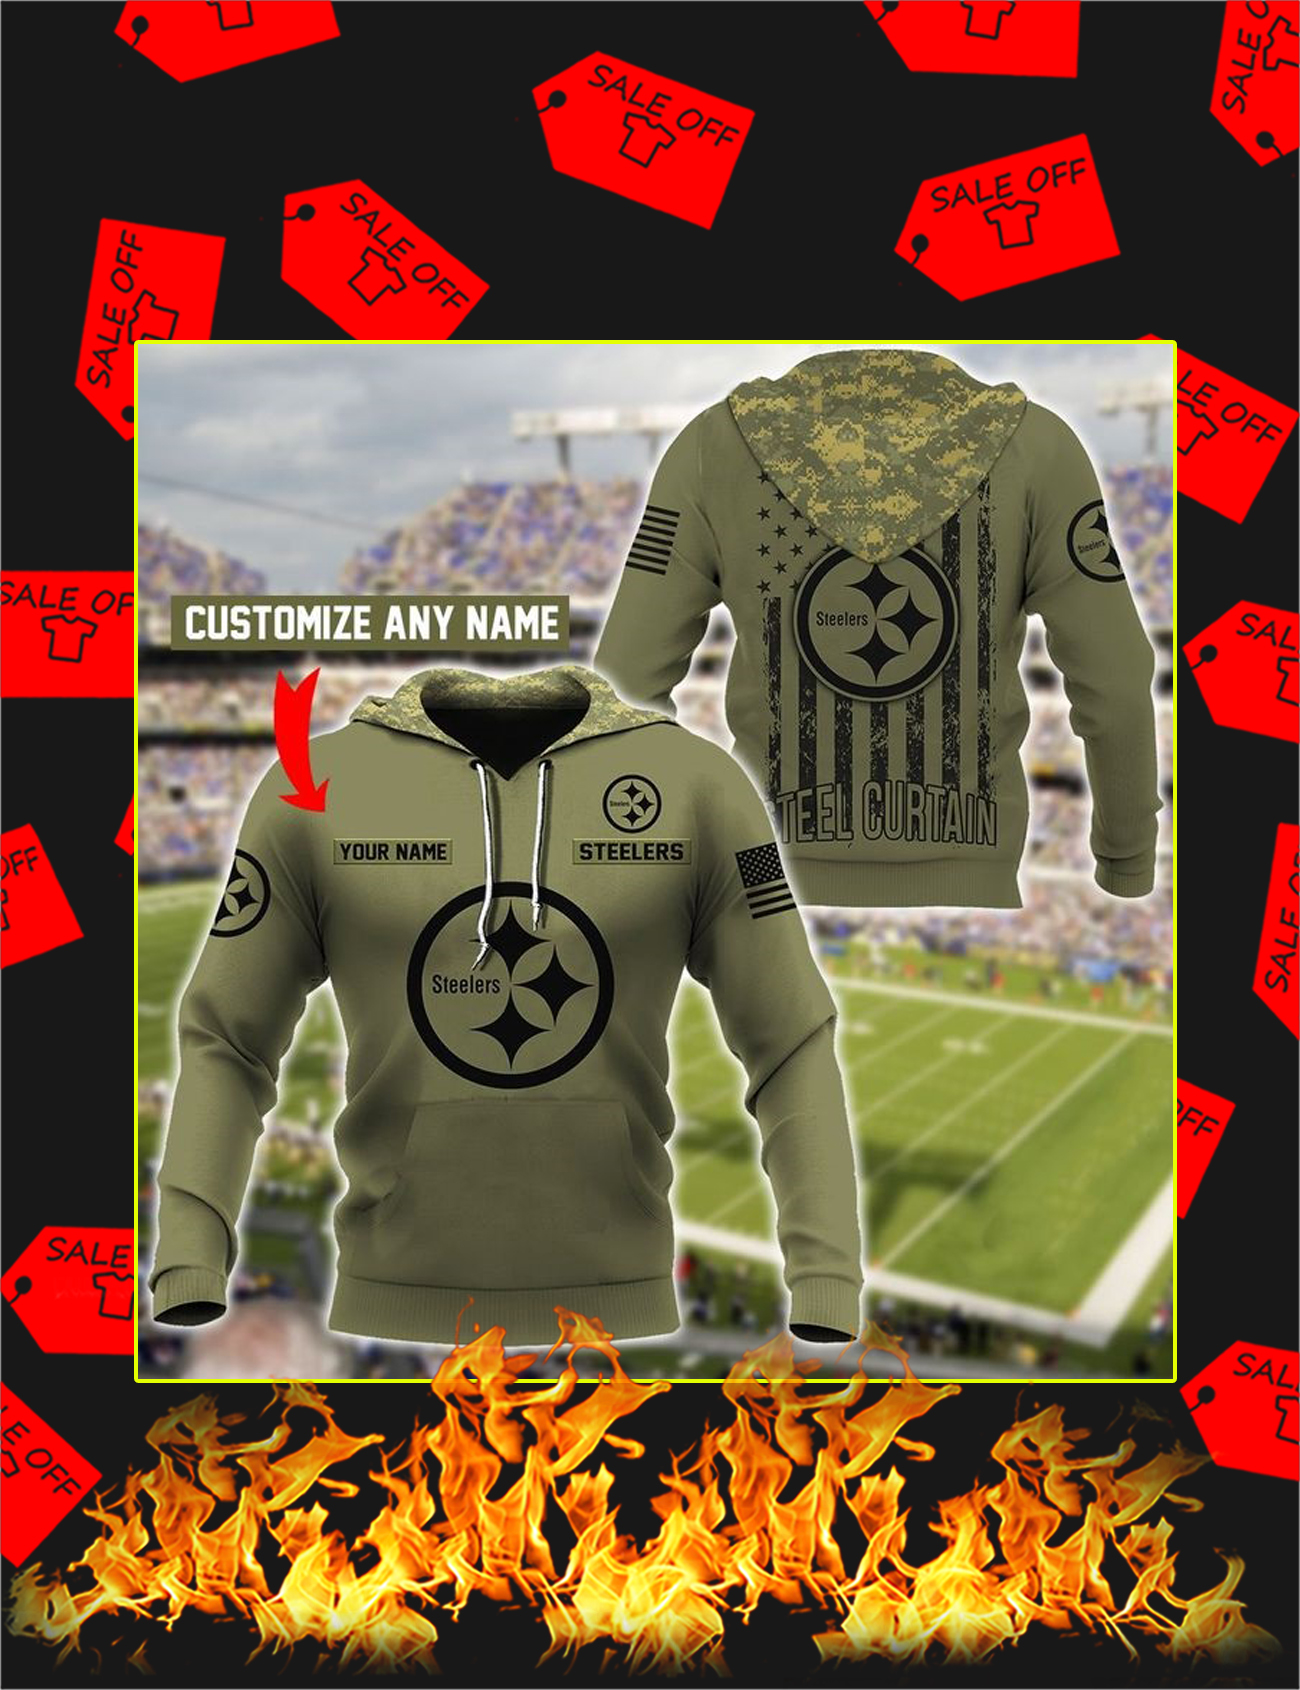 Steelers Customize Custom Name 3D Hoodie - Size XL